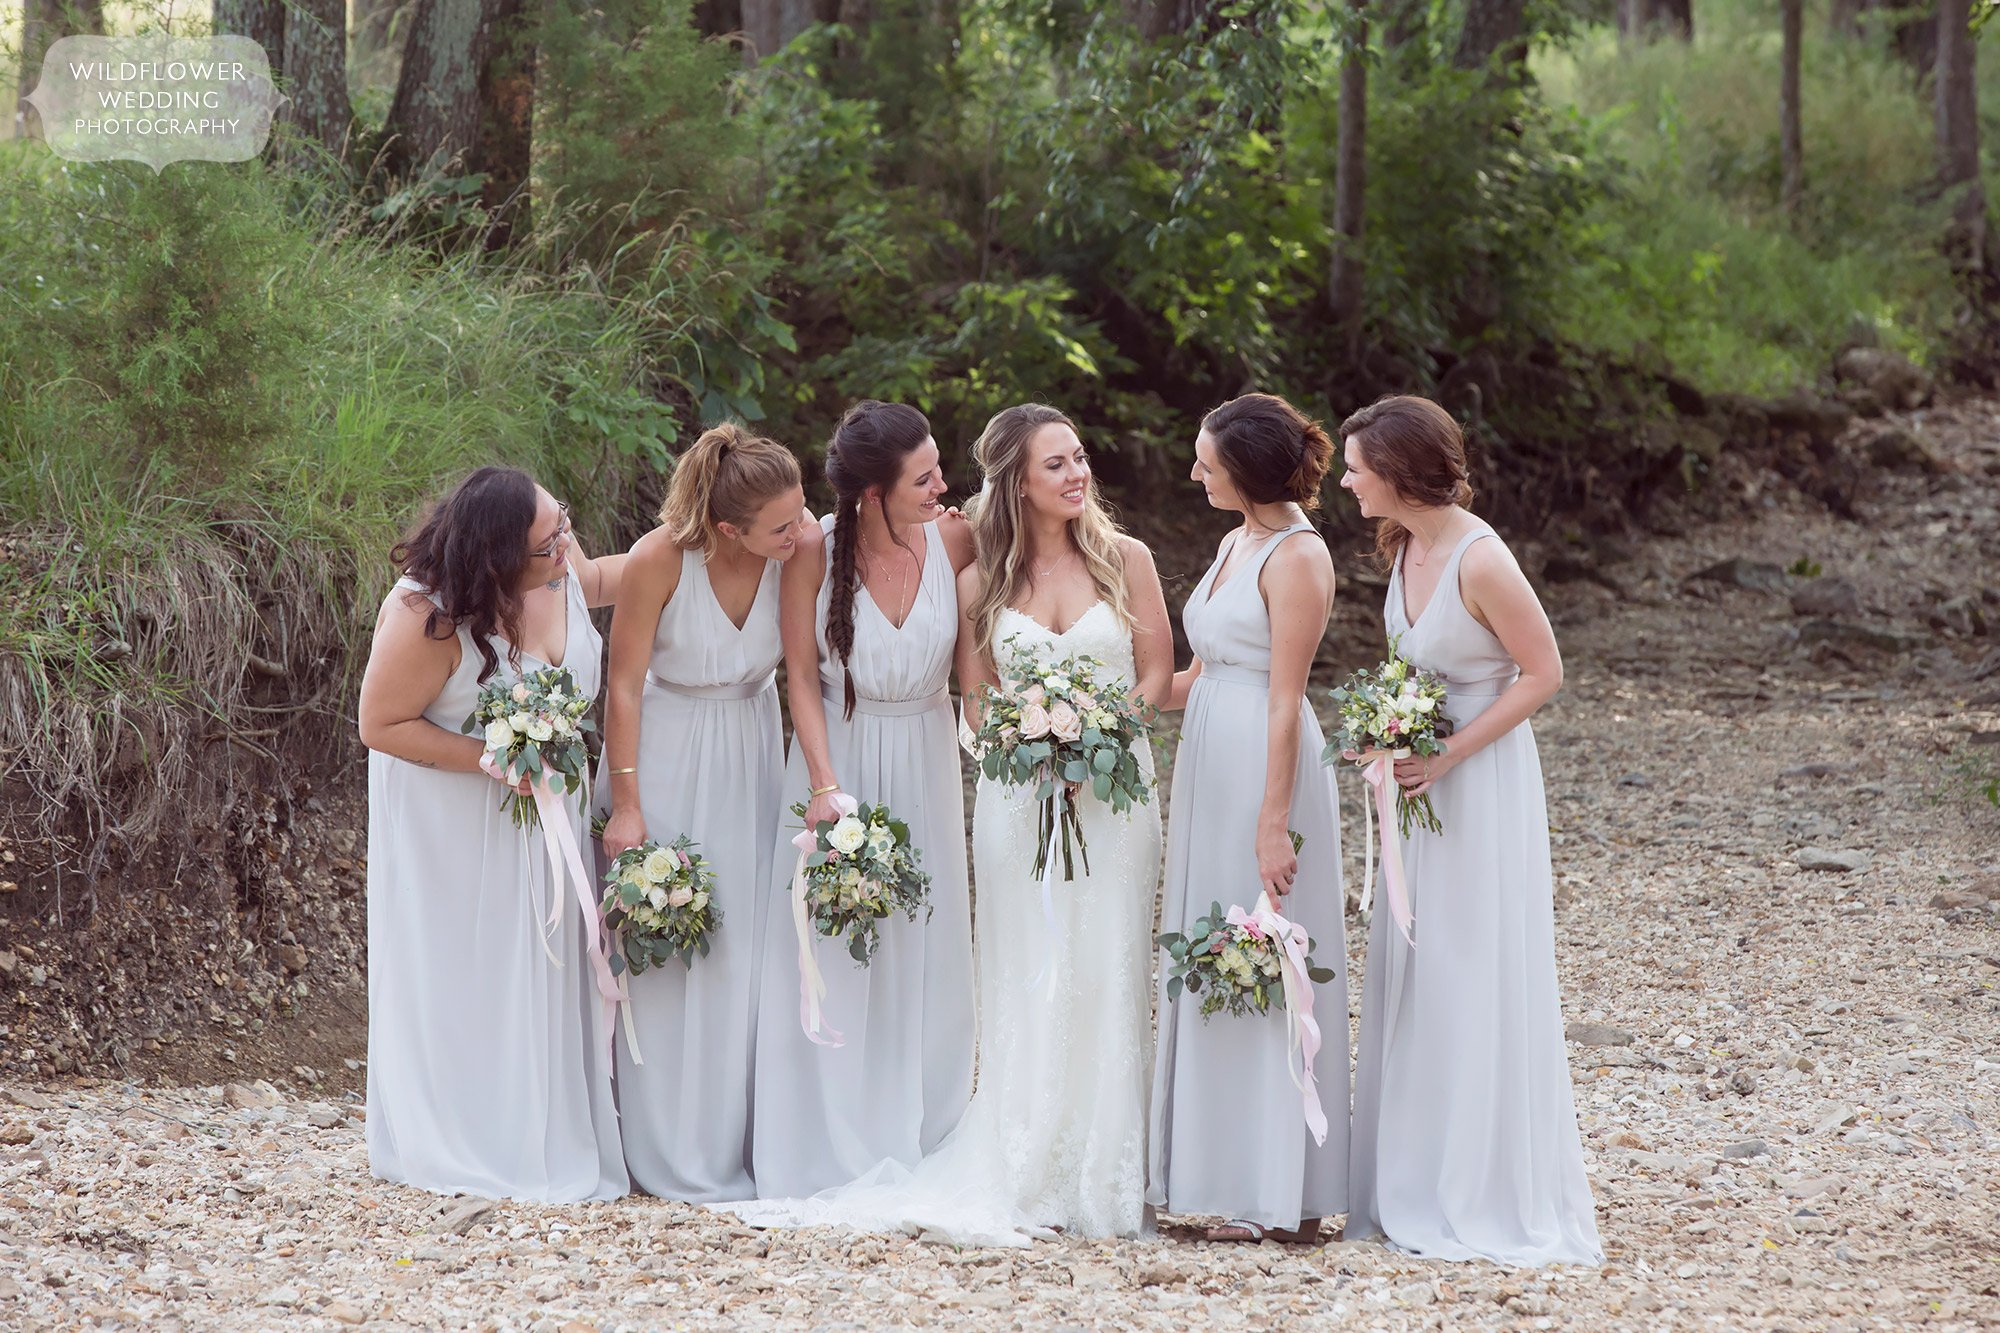 Natural and anthropologie style wedding photography of the bridesmaids at Kempker's Back 40.